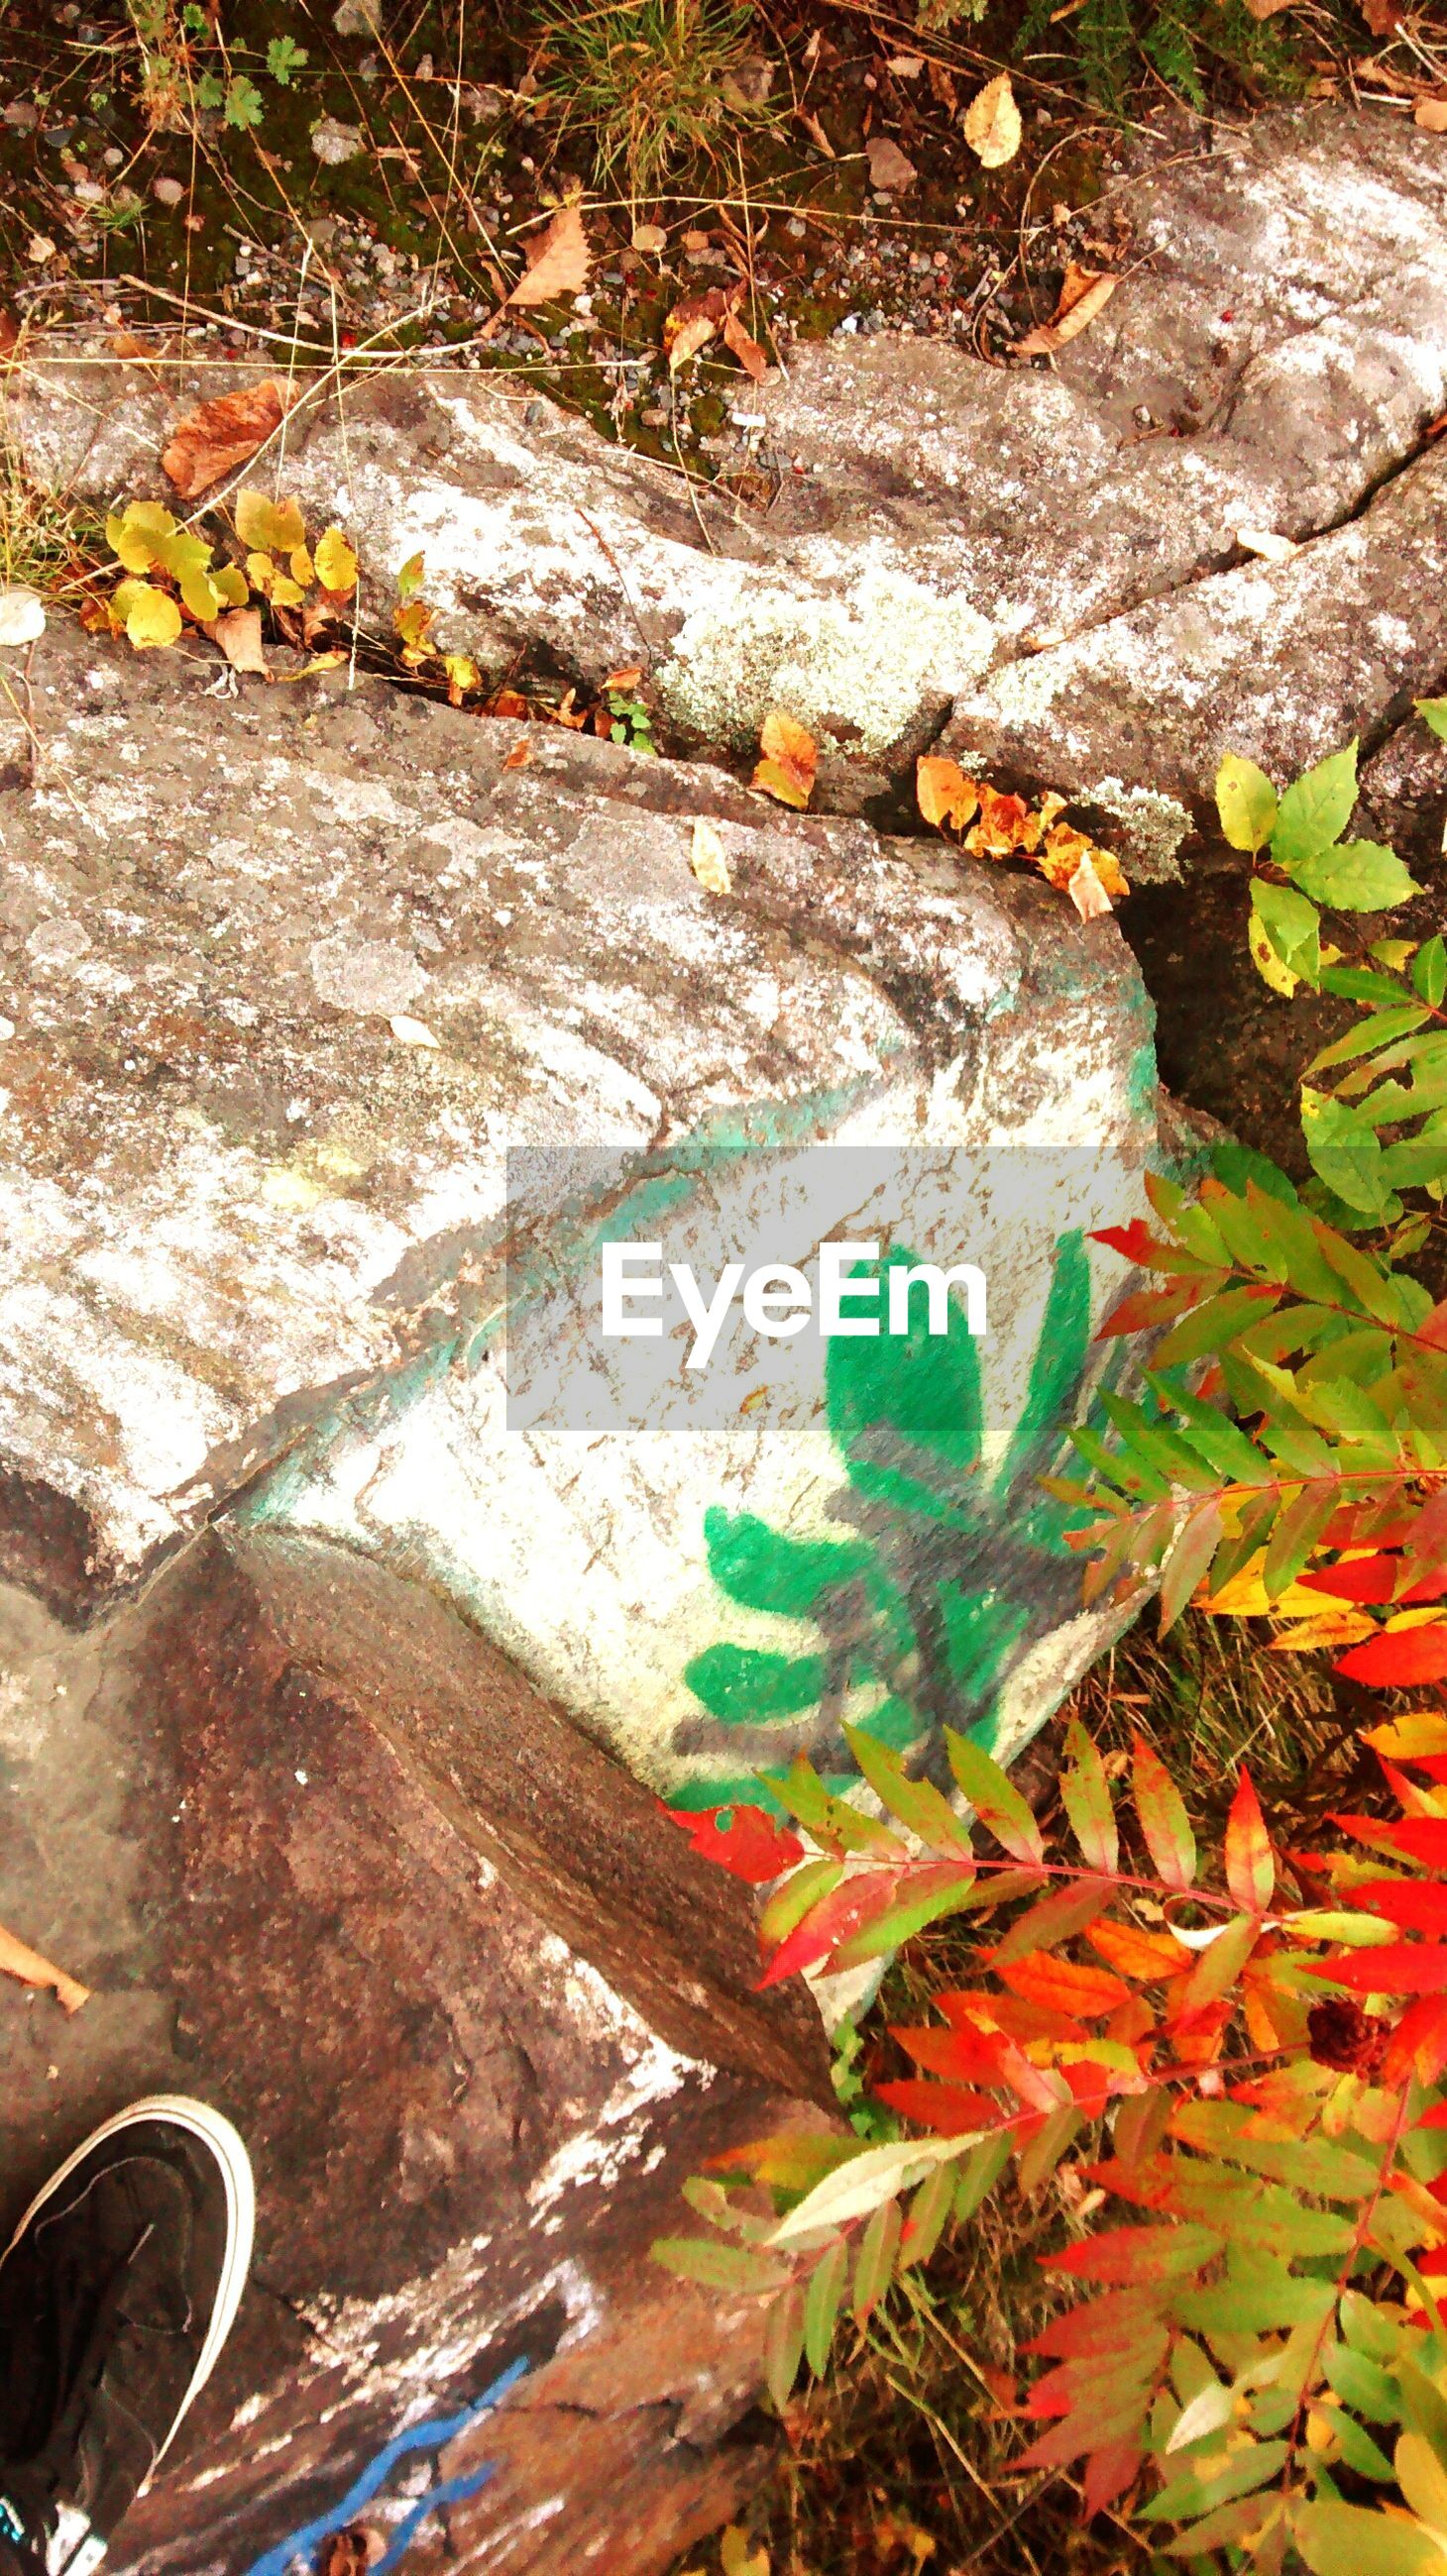 high angle view, leaf, plant, growth, day, outdoors, nature, no people, bicycle, sunlight, fallen, wall - building feature, messy, street, abandoned, flower, ground, footpath, green color, autumn